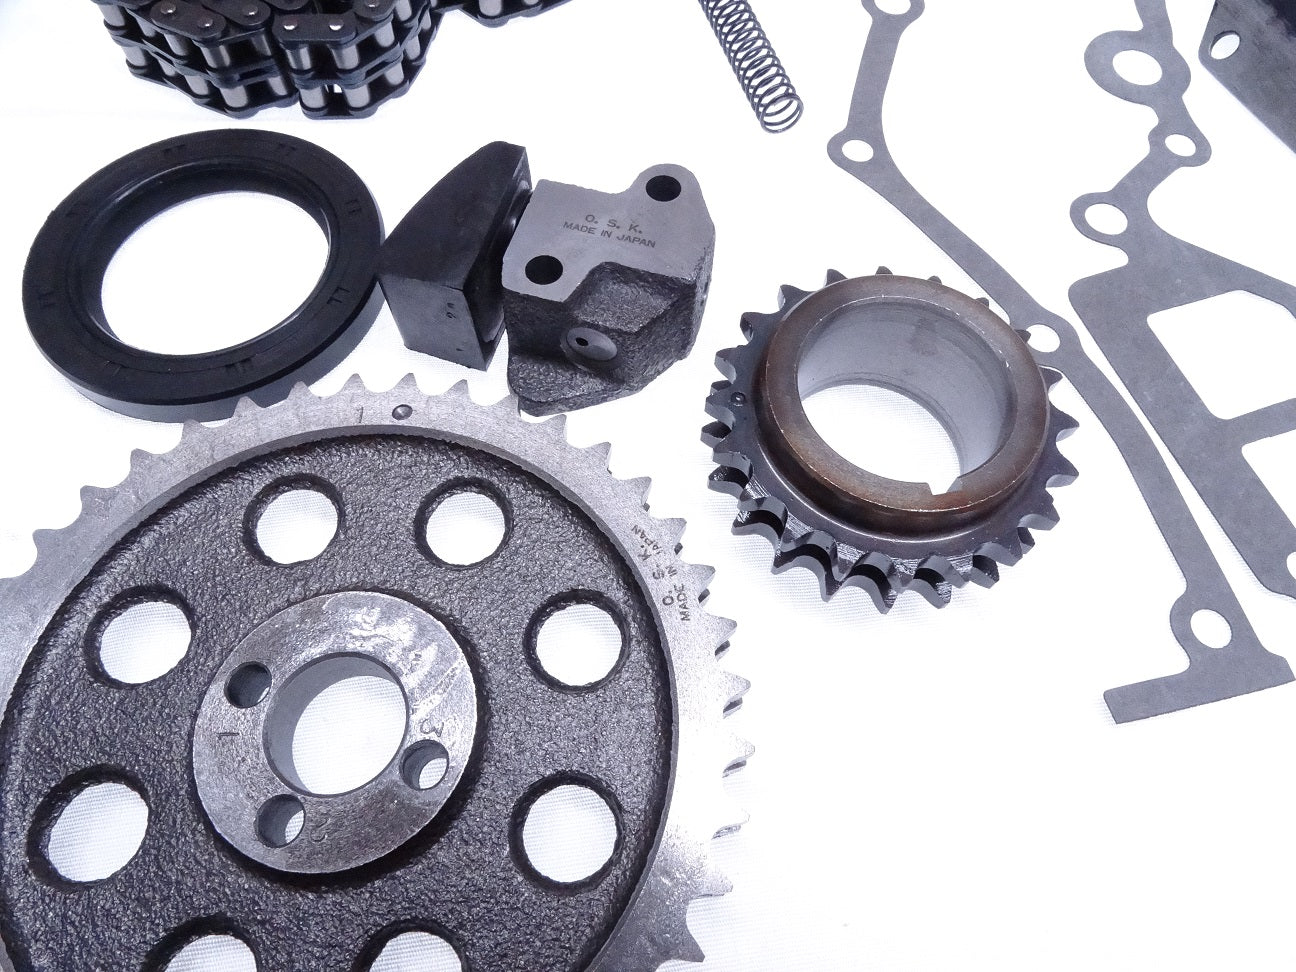 Datsun 1975-83 280Z 280ZX L28  Timing Chain Set kit Guides Tensioner NEW 213